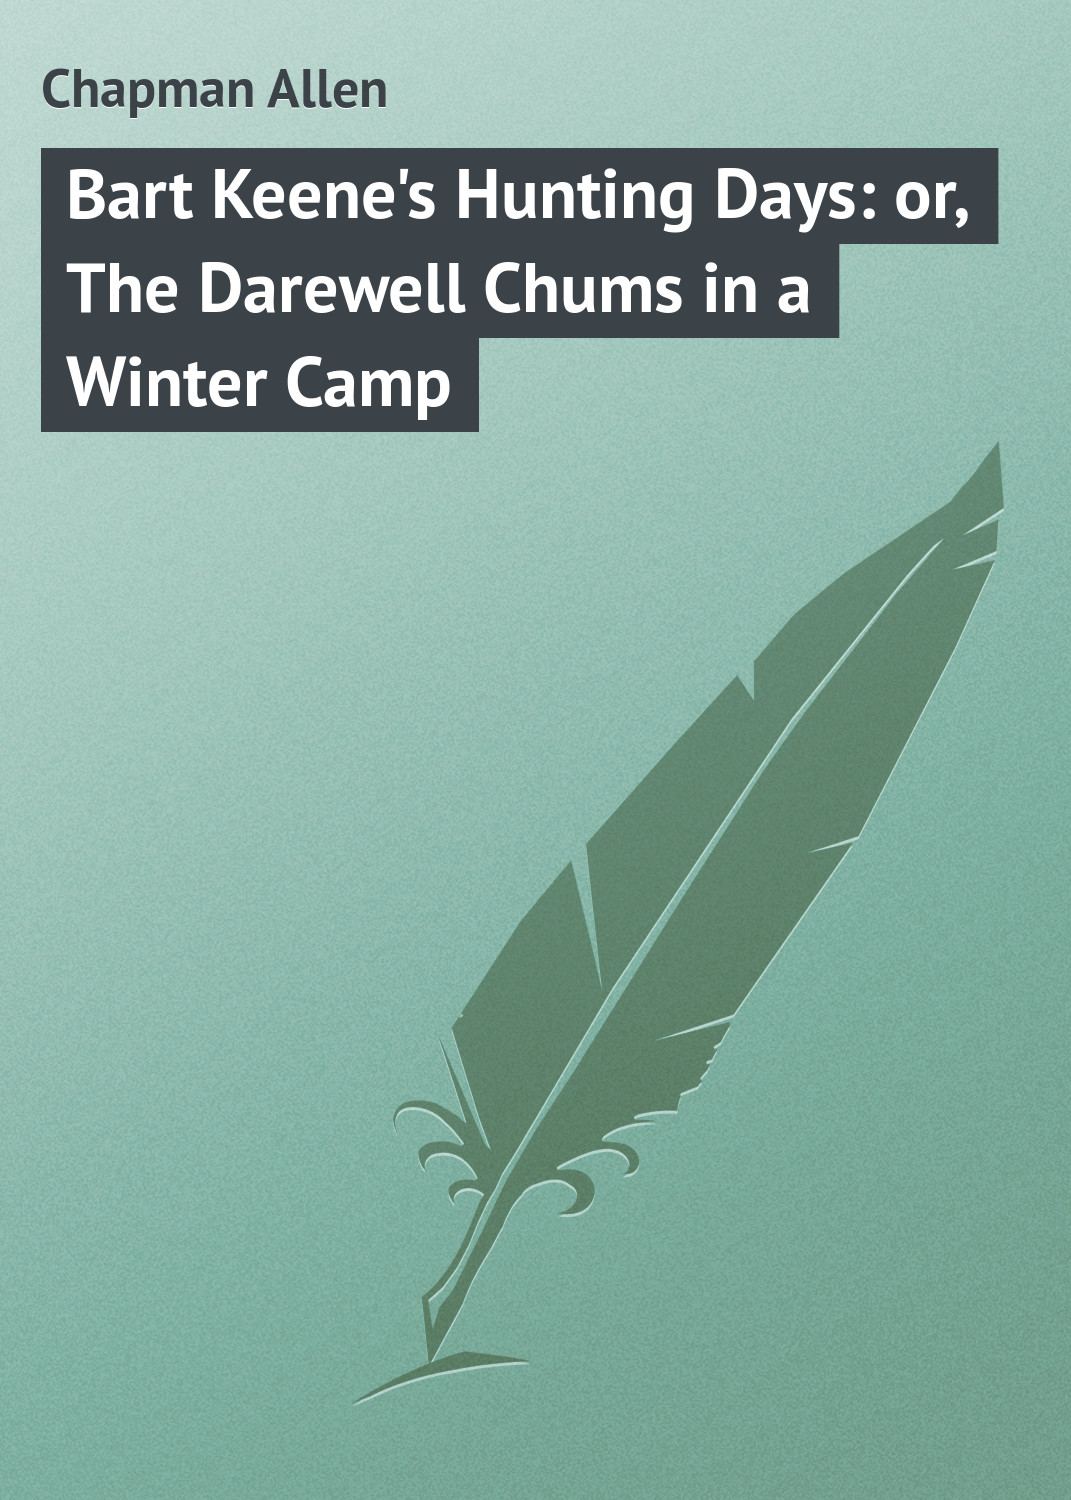 Chapman Allen Bart Keene's Hunting Days: or, The Darewell Chums in a Winter Camp a wunderer 24 etuden in allen tonarten